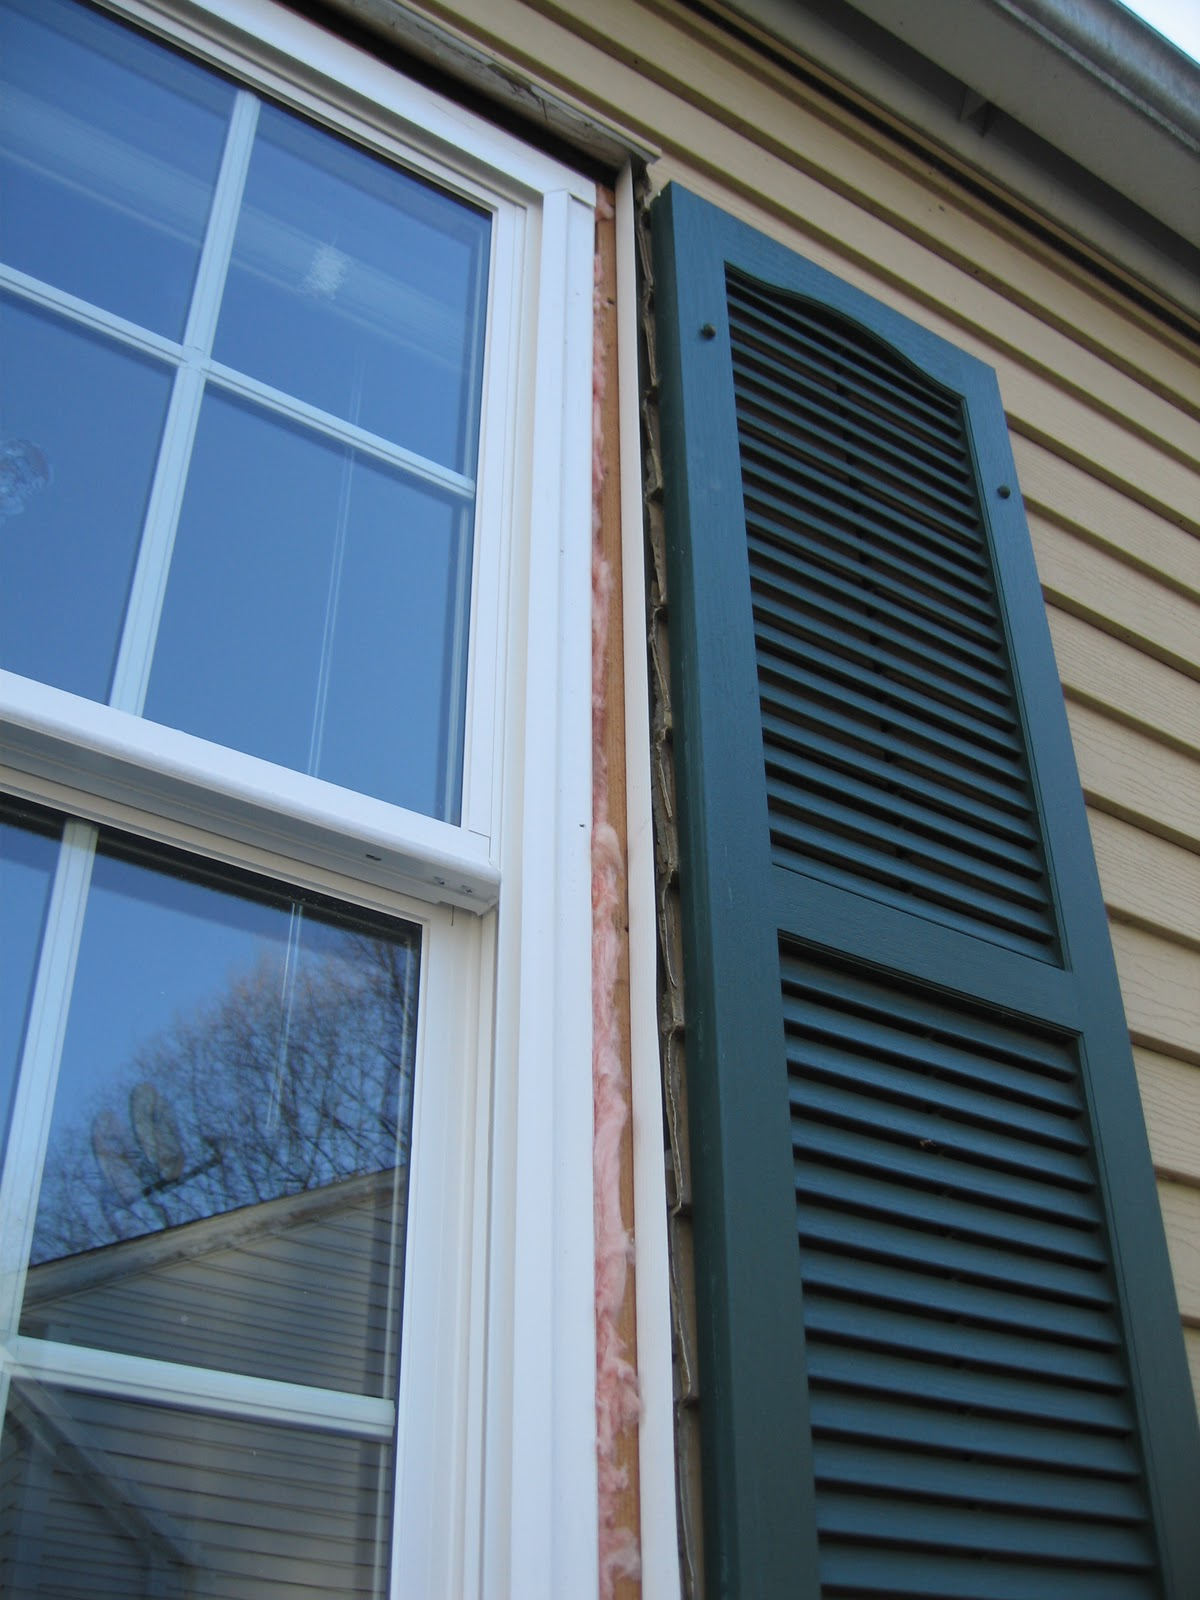 how to seal old alum window siding add flashing insulation caulking